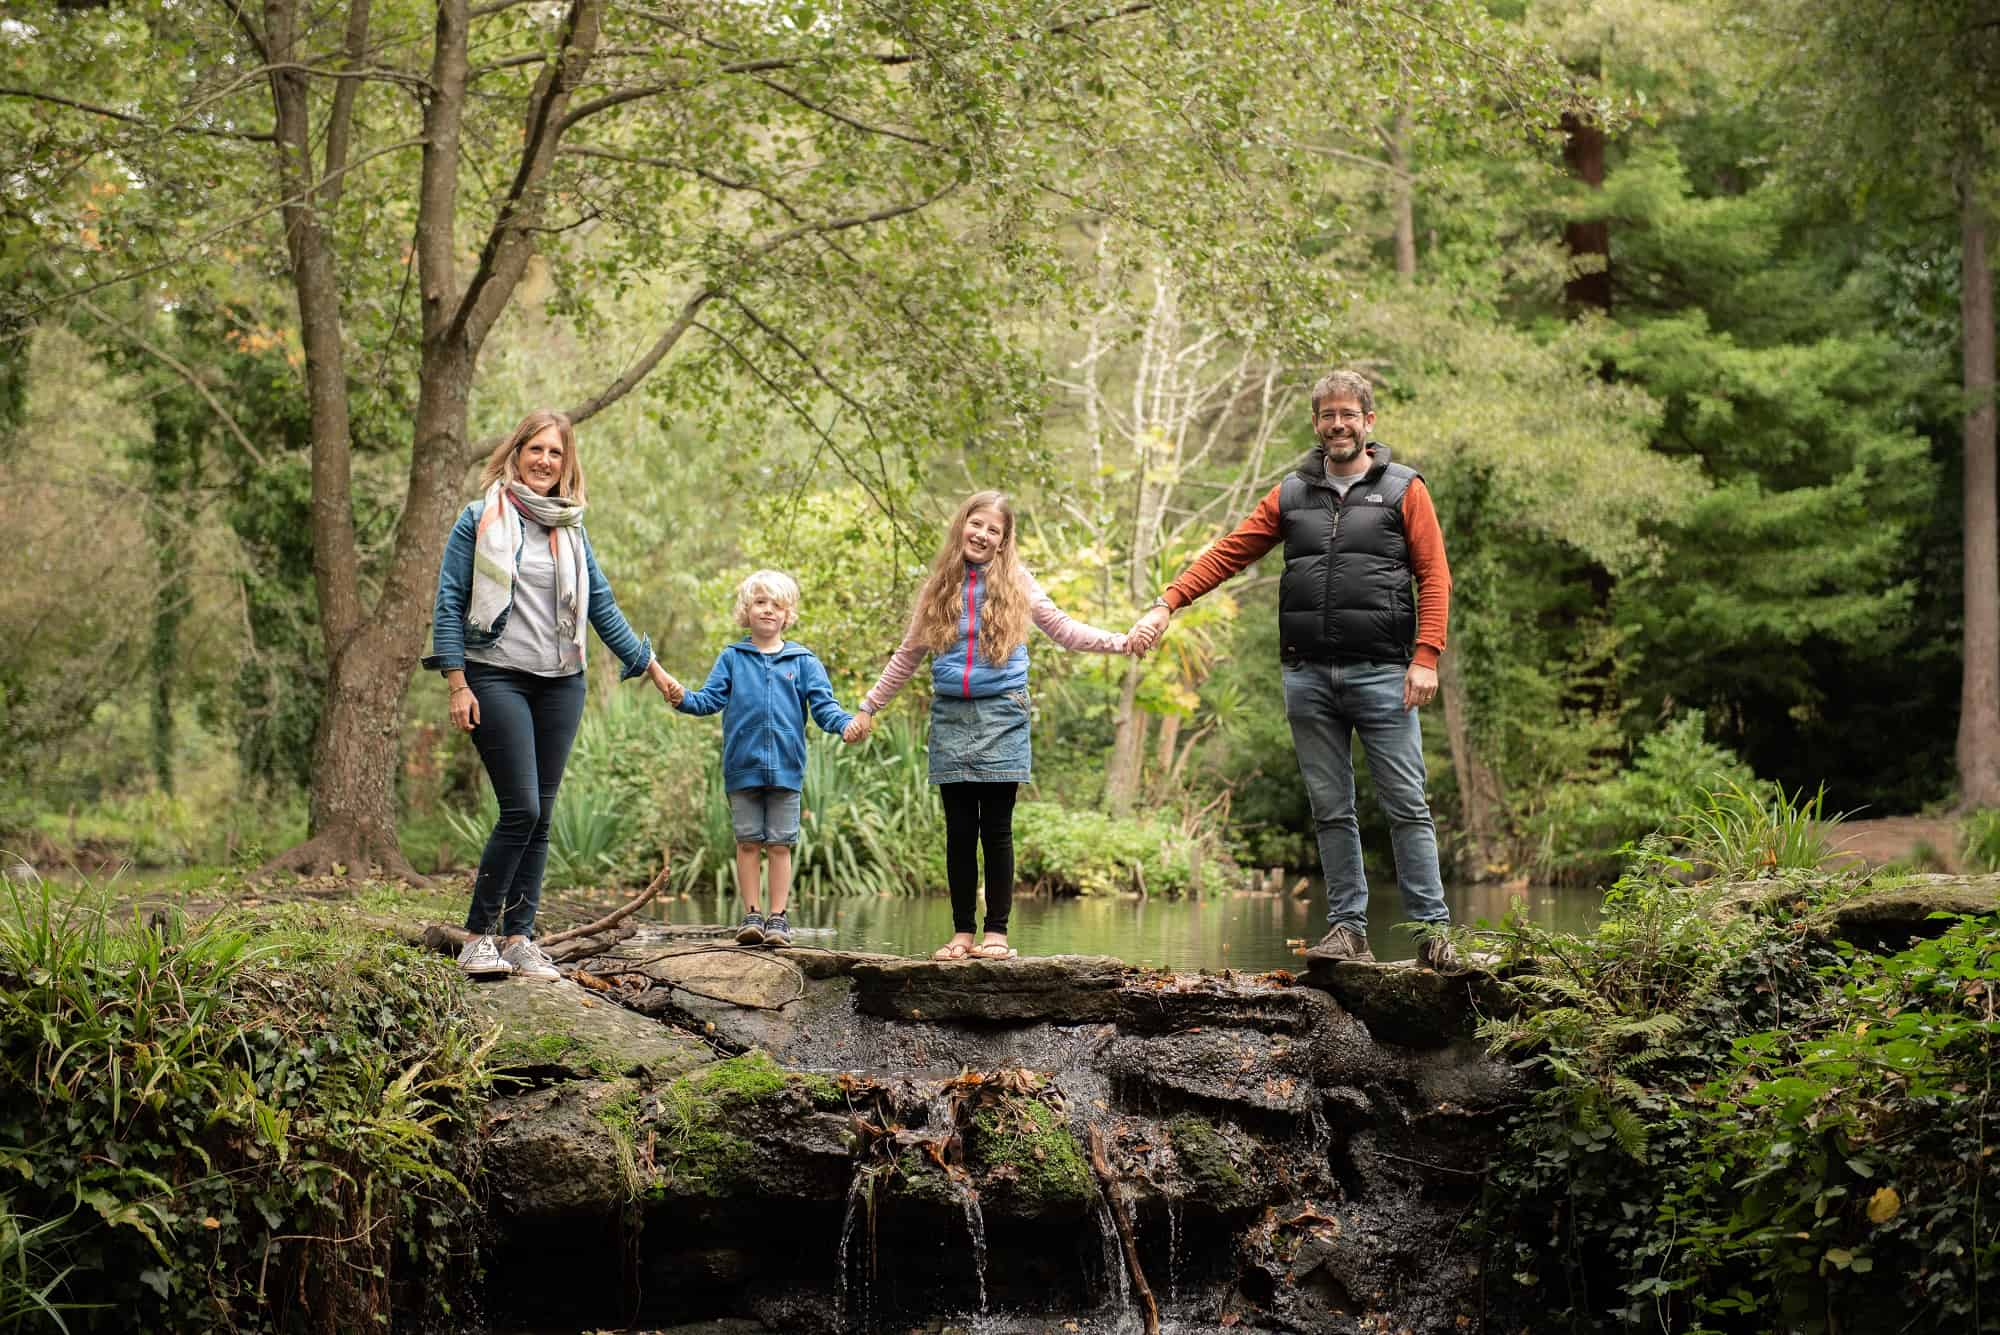 Family having a photo shoot at Holly hill in sarisbury green, southampton. holding hands over a small waterfall in a line together